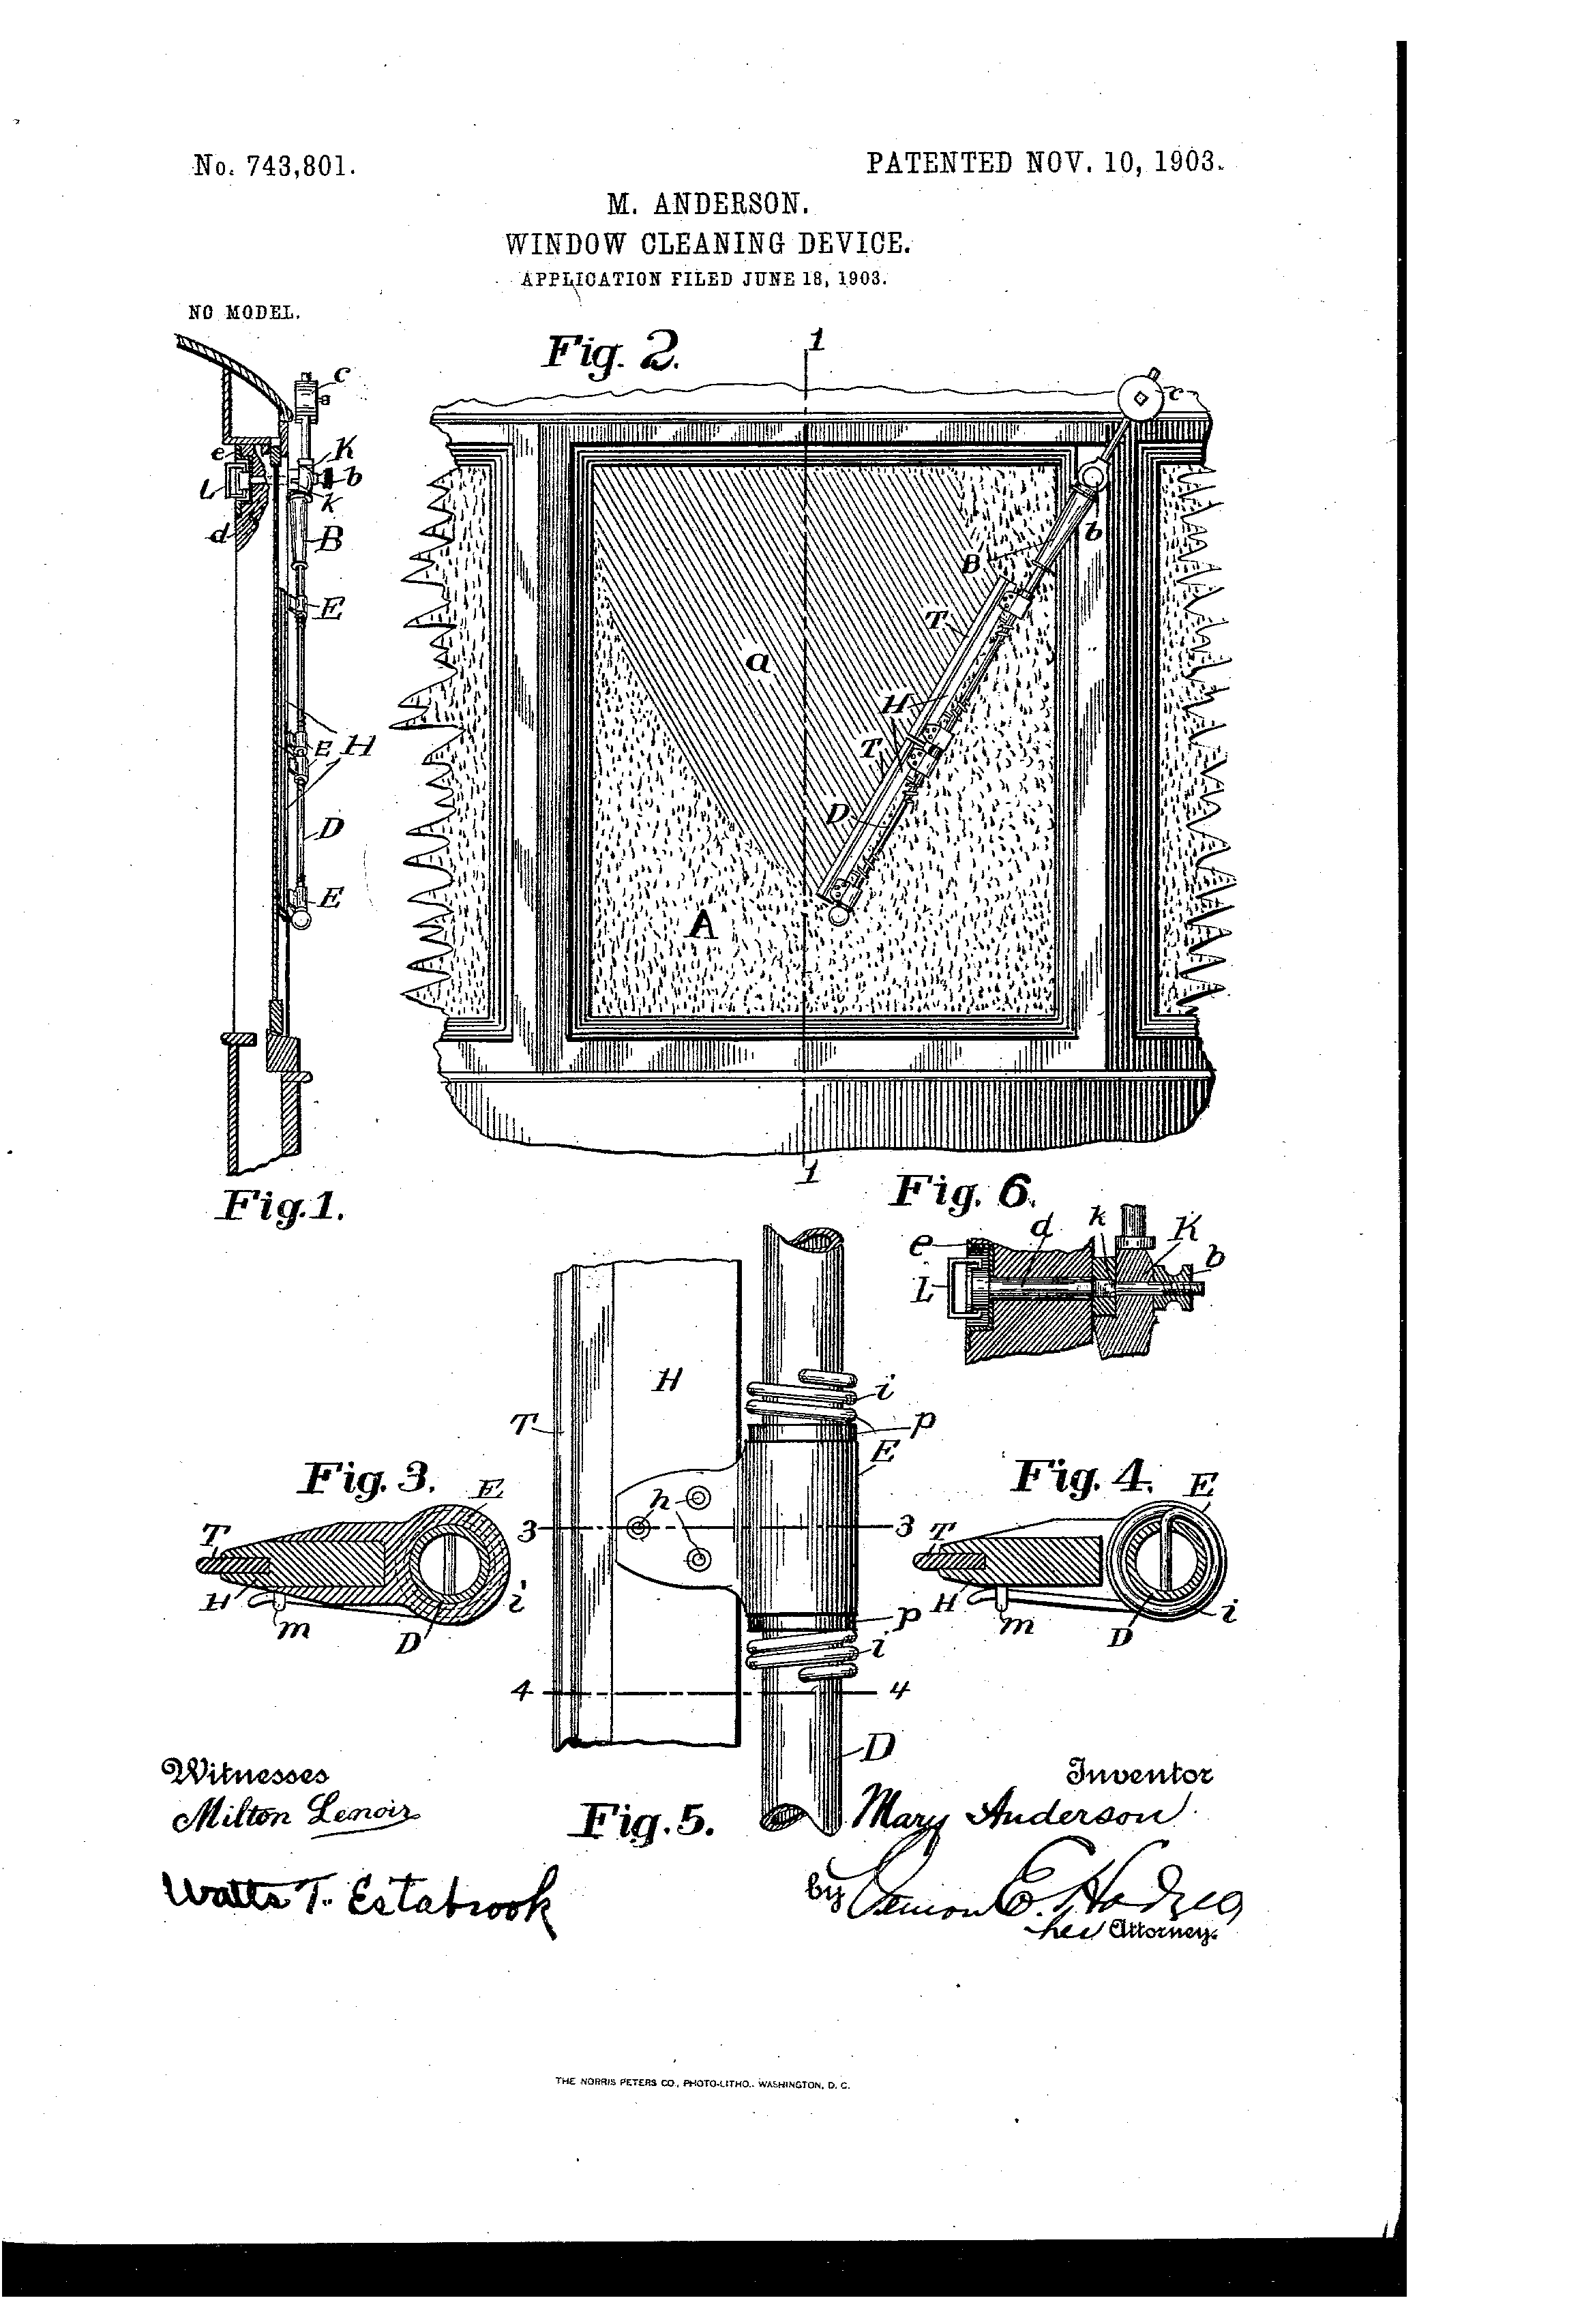 Windscreen Wiper Wikipedia Ford Rear Motor Wiring Diagram Andersons 1903 Window Cleaner Design